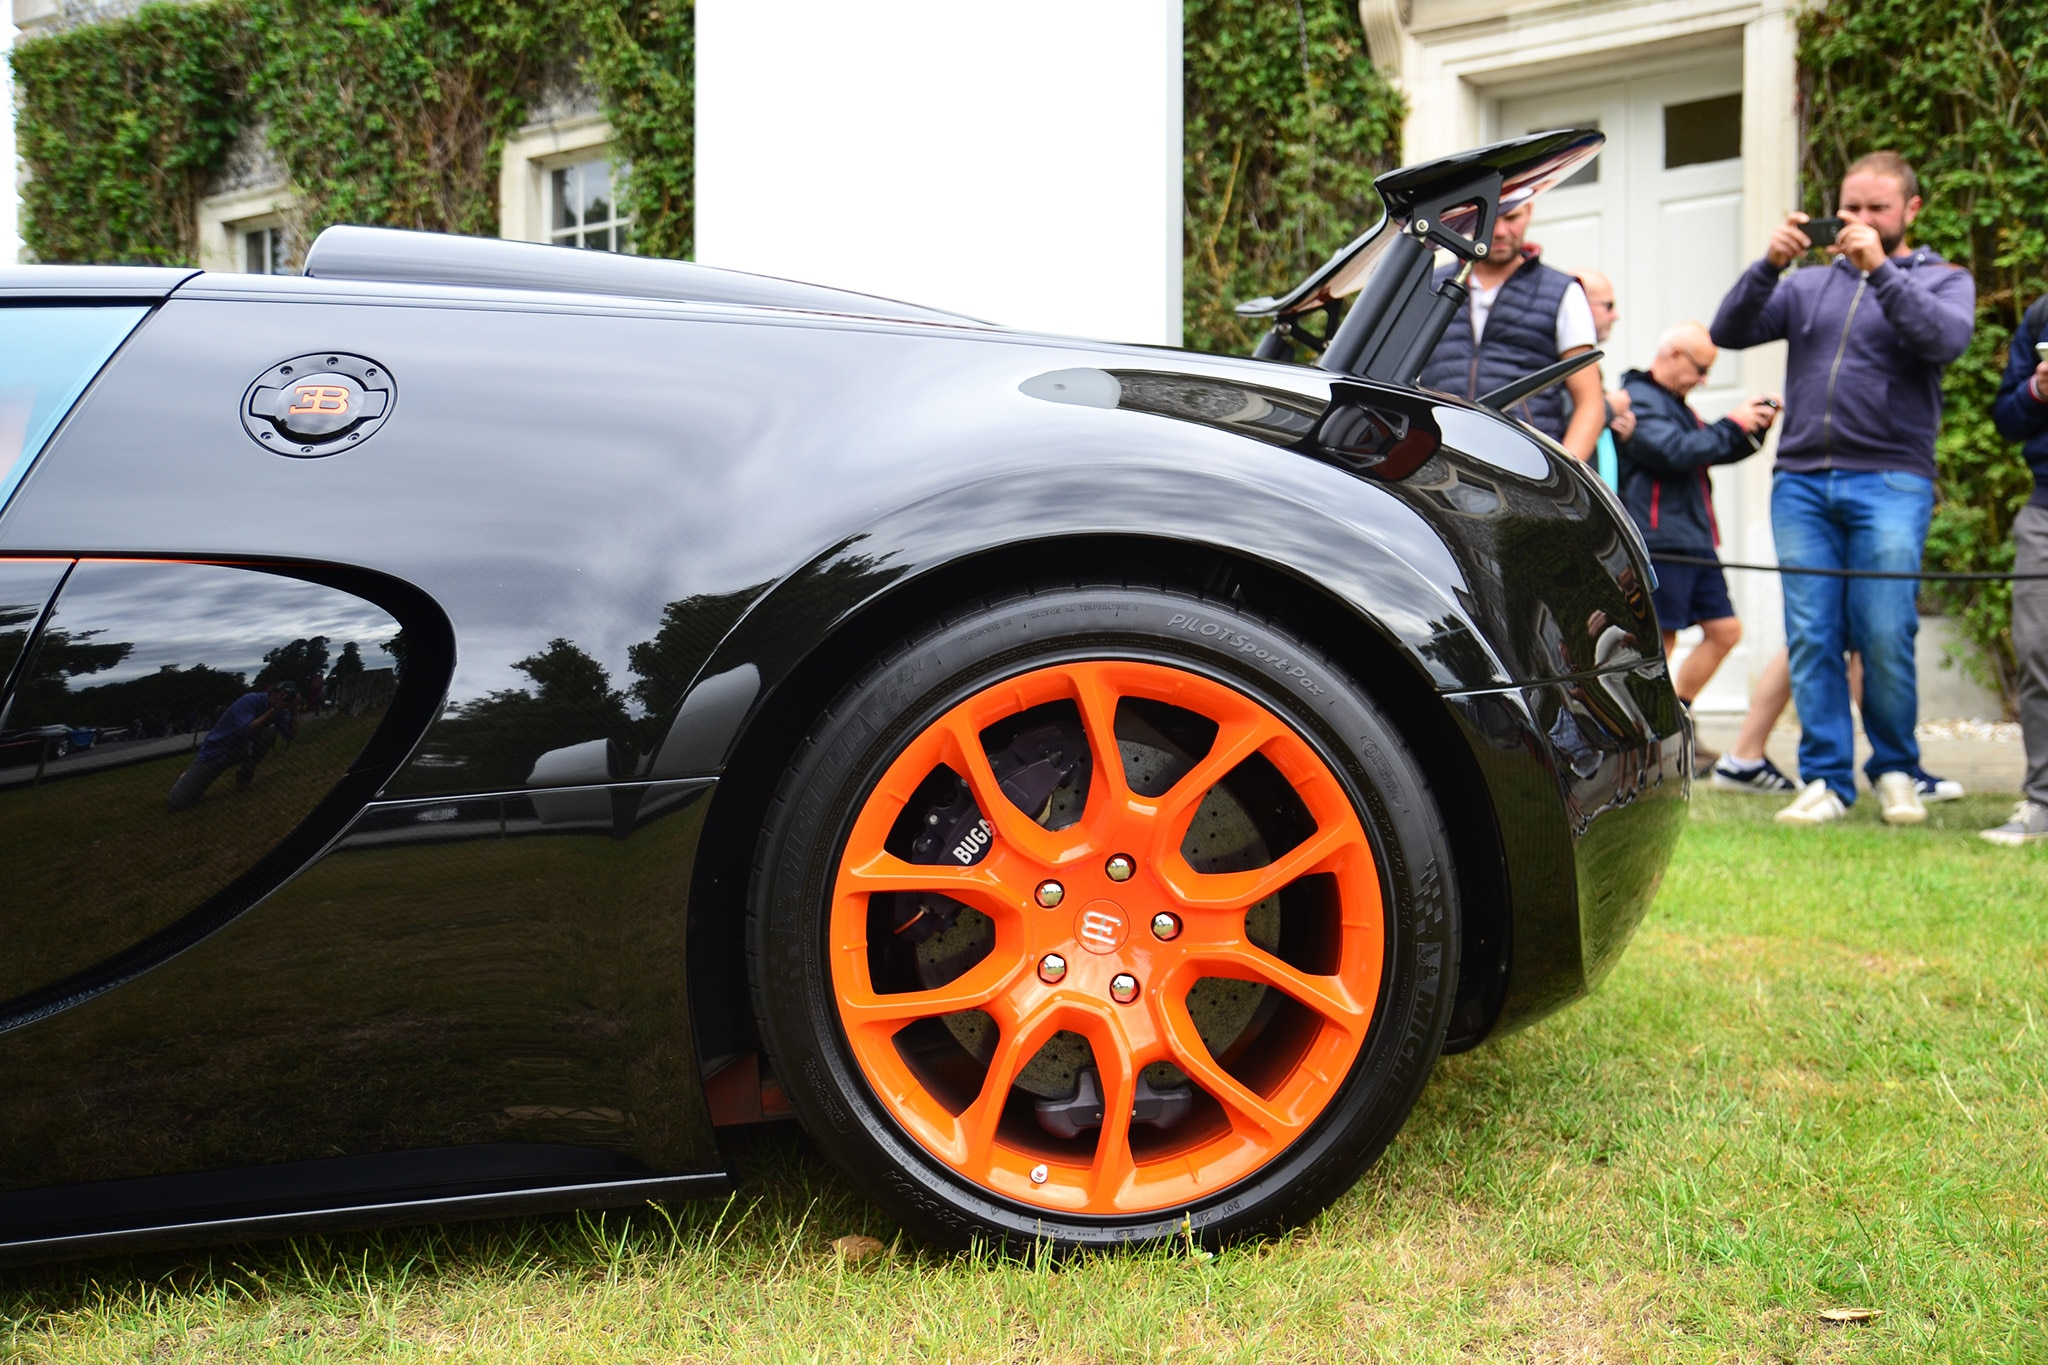 Bugatti-Veyron-Grand-Sport-Vitesse-Goodwood-Rear-Detail Astounding Bugatti Veyron Grand Sport Vitesse Roof Cars Trend